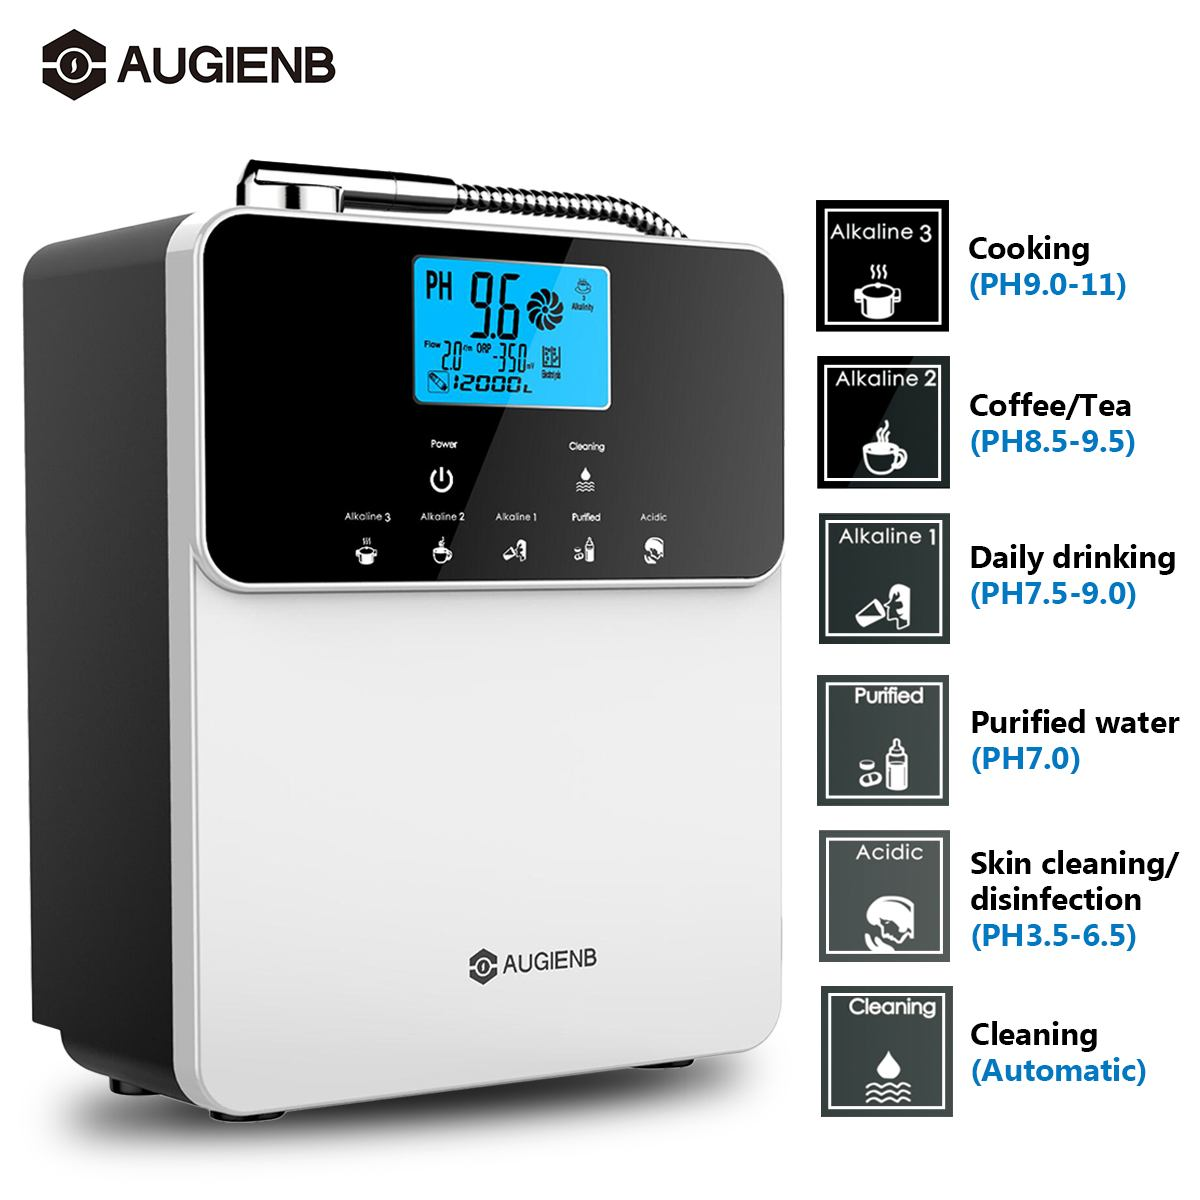 Augienb 12000L Water Ionizer Purifier Machine PH3.5-11 Alkaline Acid Adjust 5 Mode Settings Auto-Cleaning LCD Touch Water Filter